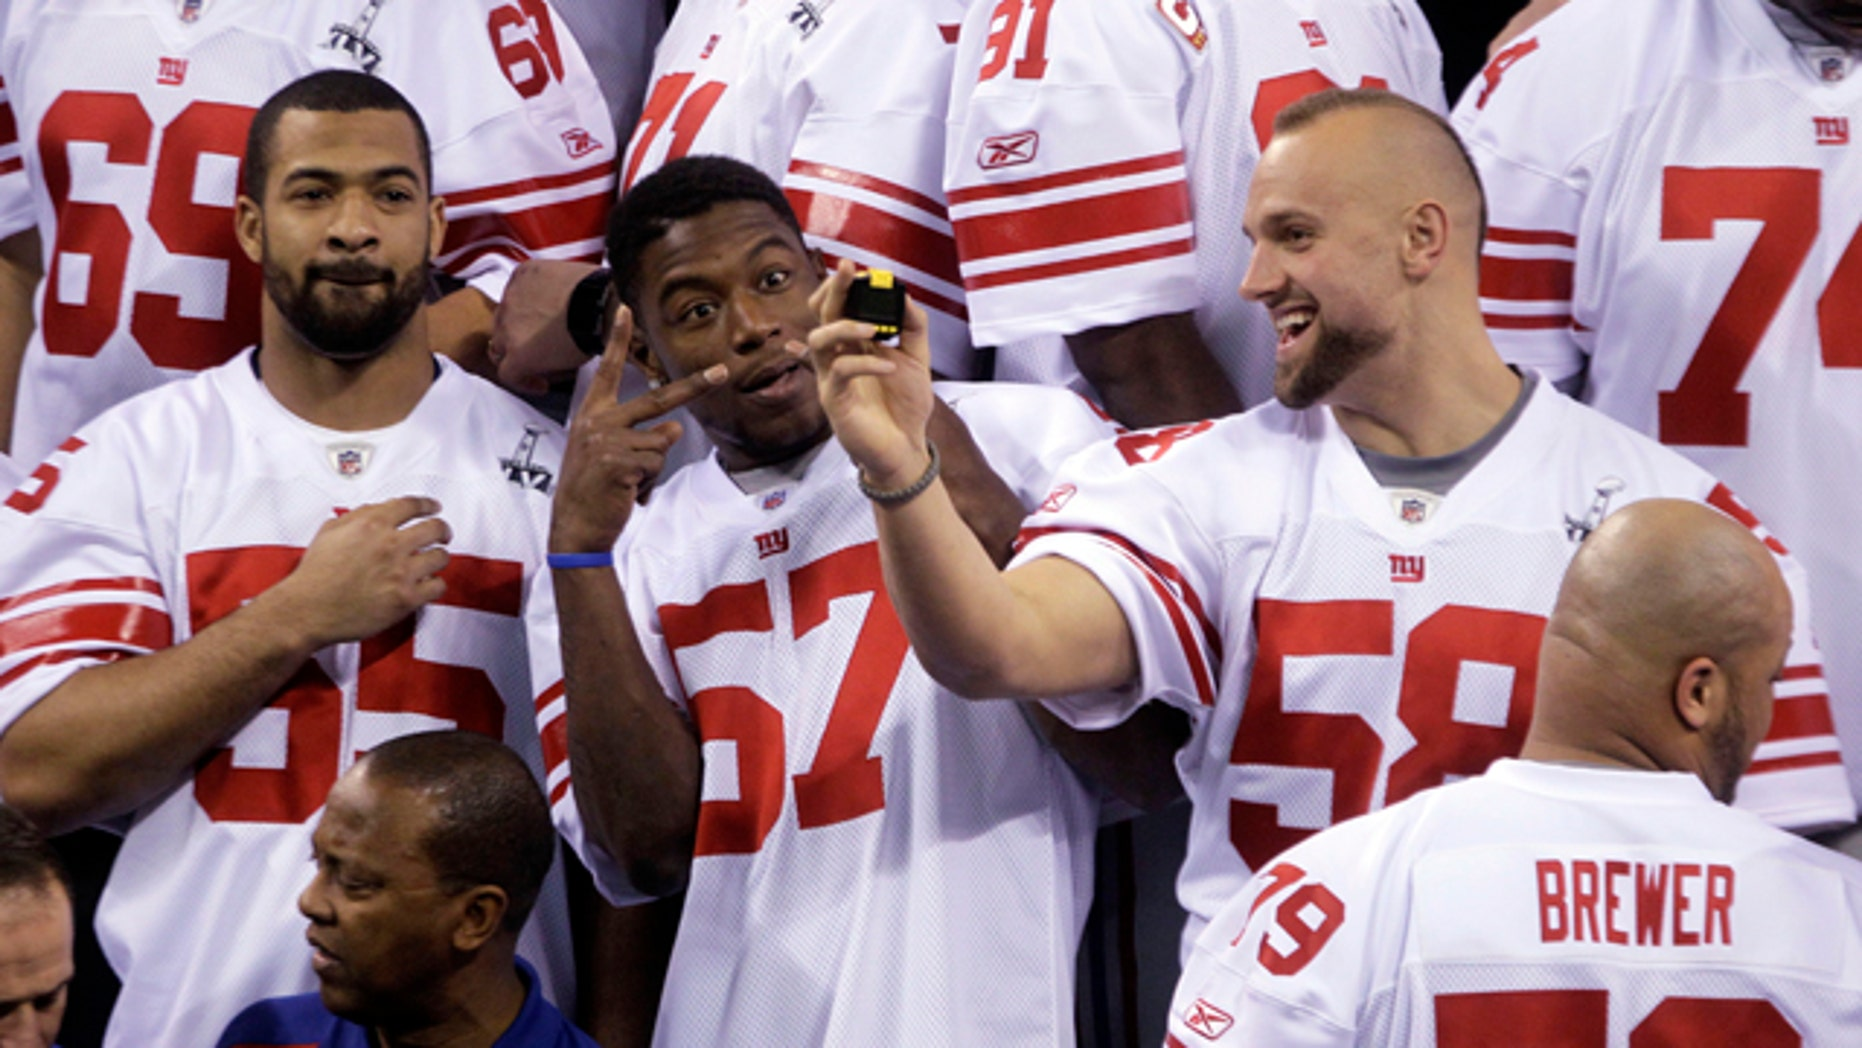 Jan. 31, 2012: New York Giants linebacker Spencer Paysinger (55), Jacquian Williams (57) and Mark Herzlich (58) have some fun during Media Day for NFL football's Super Bowl XLVI in Indianapolis.